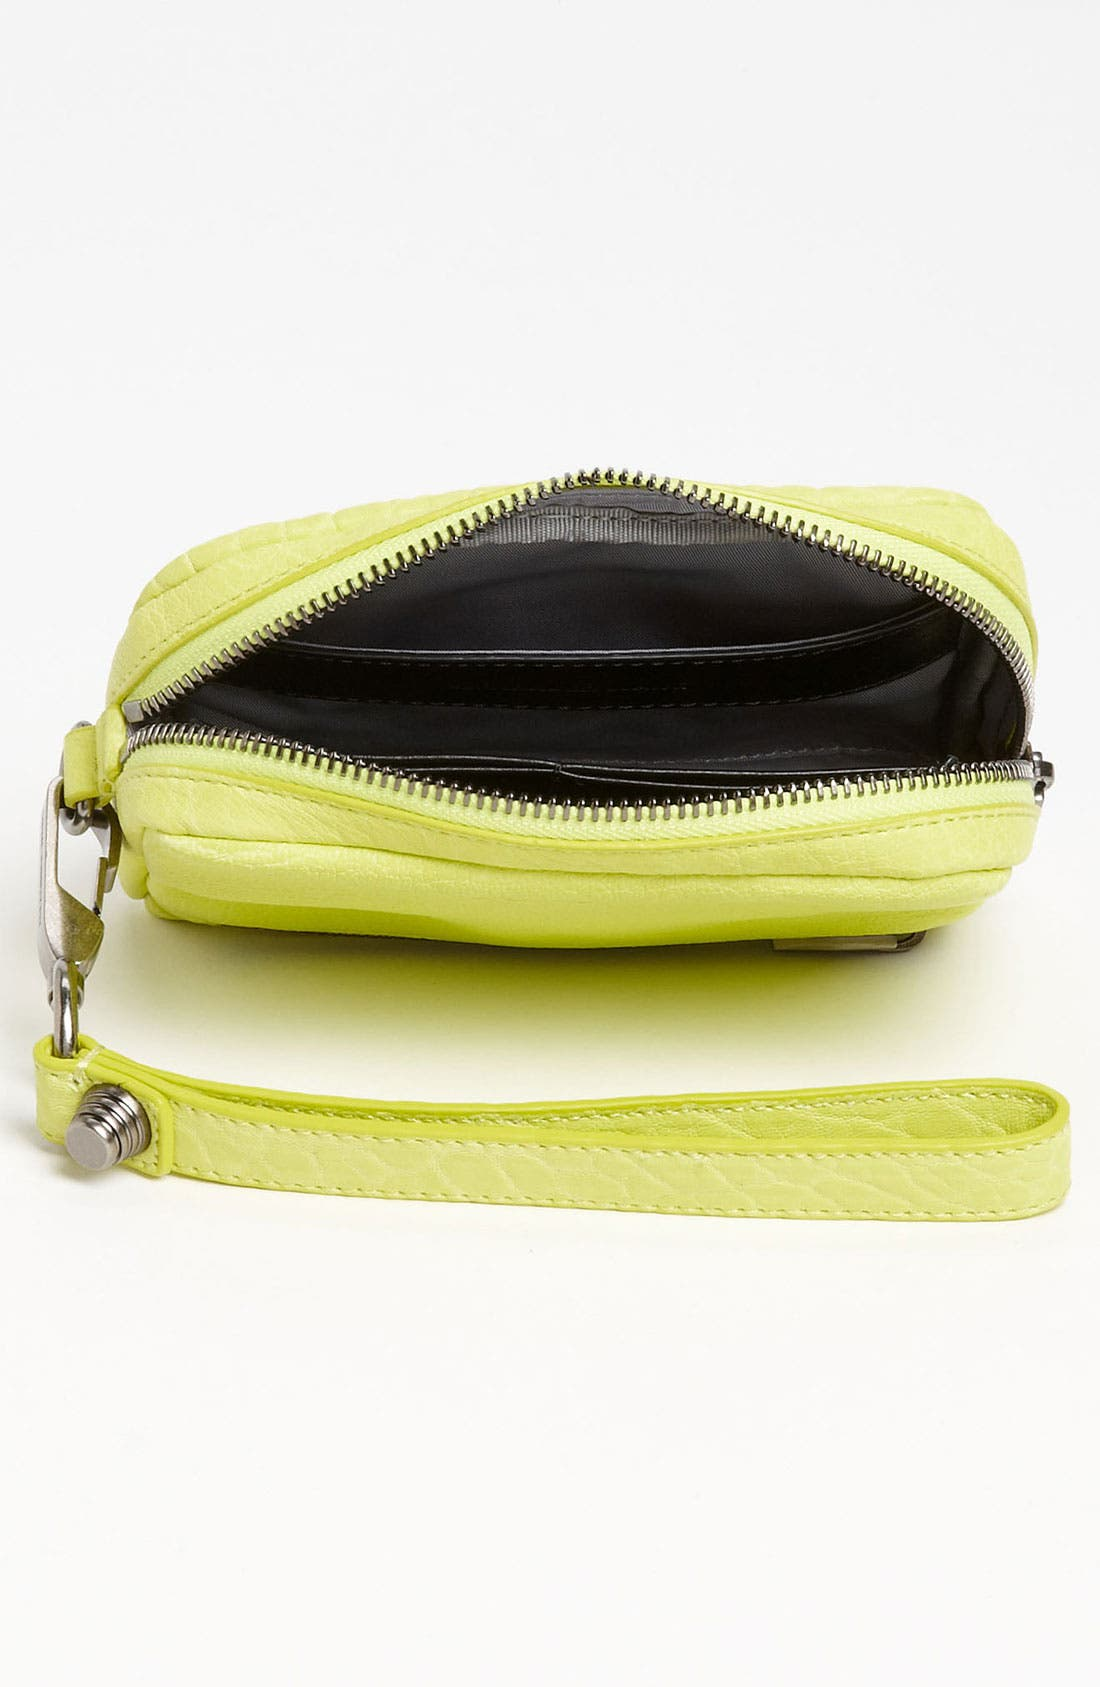 Alternate Image 3  - Alexander Wang 'Fumo' Leather Wristlet